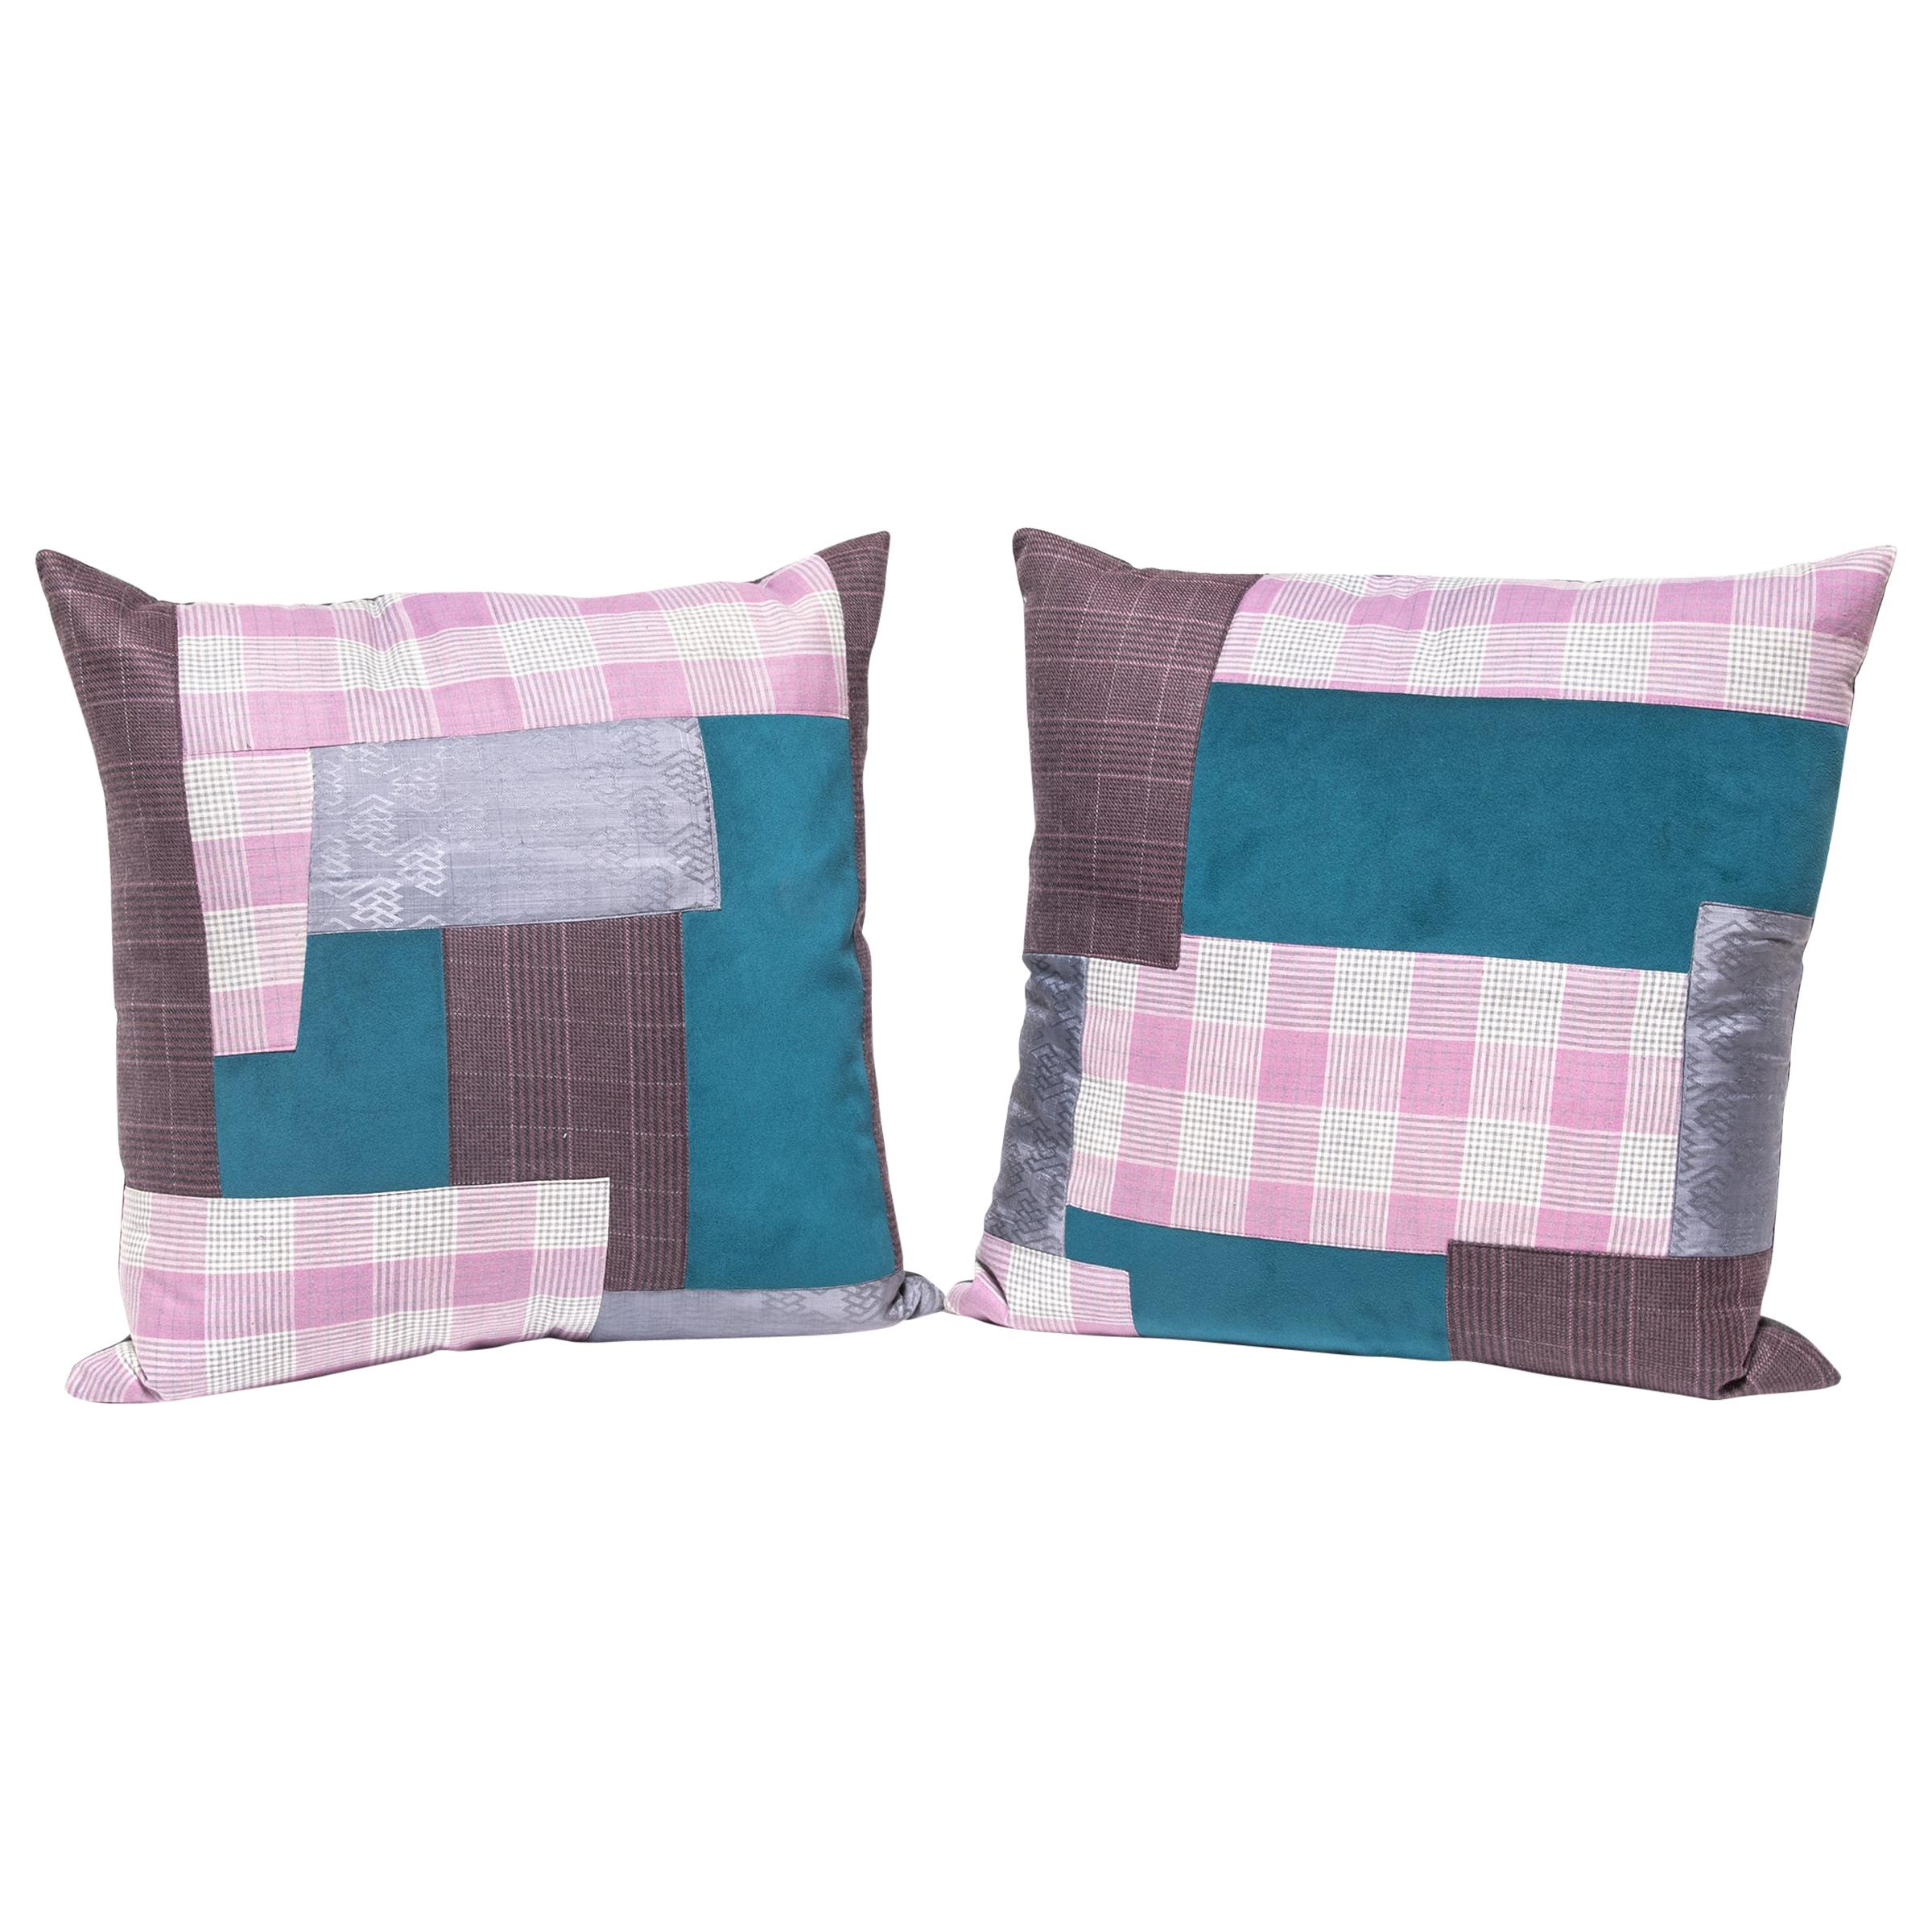 Pair of Colorful Japanese Suiting Pillows